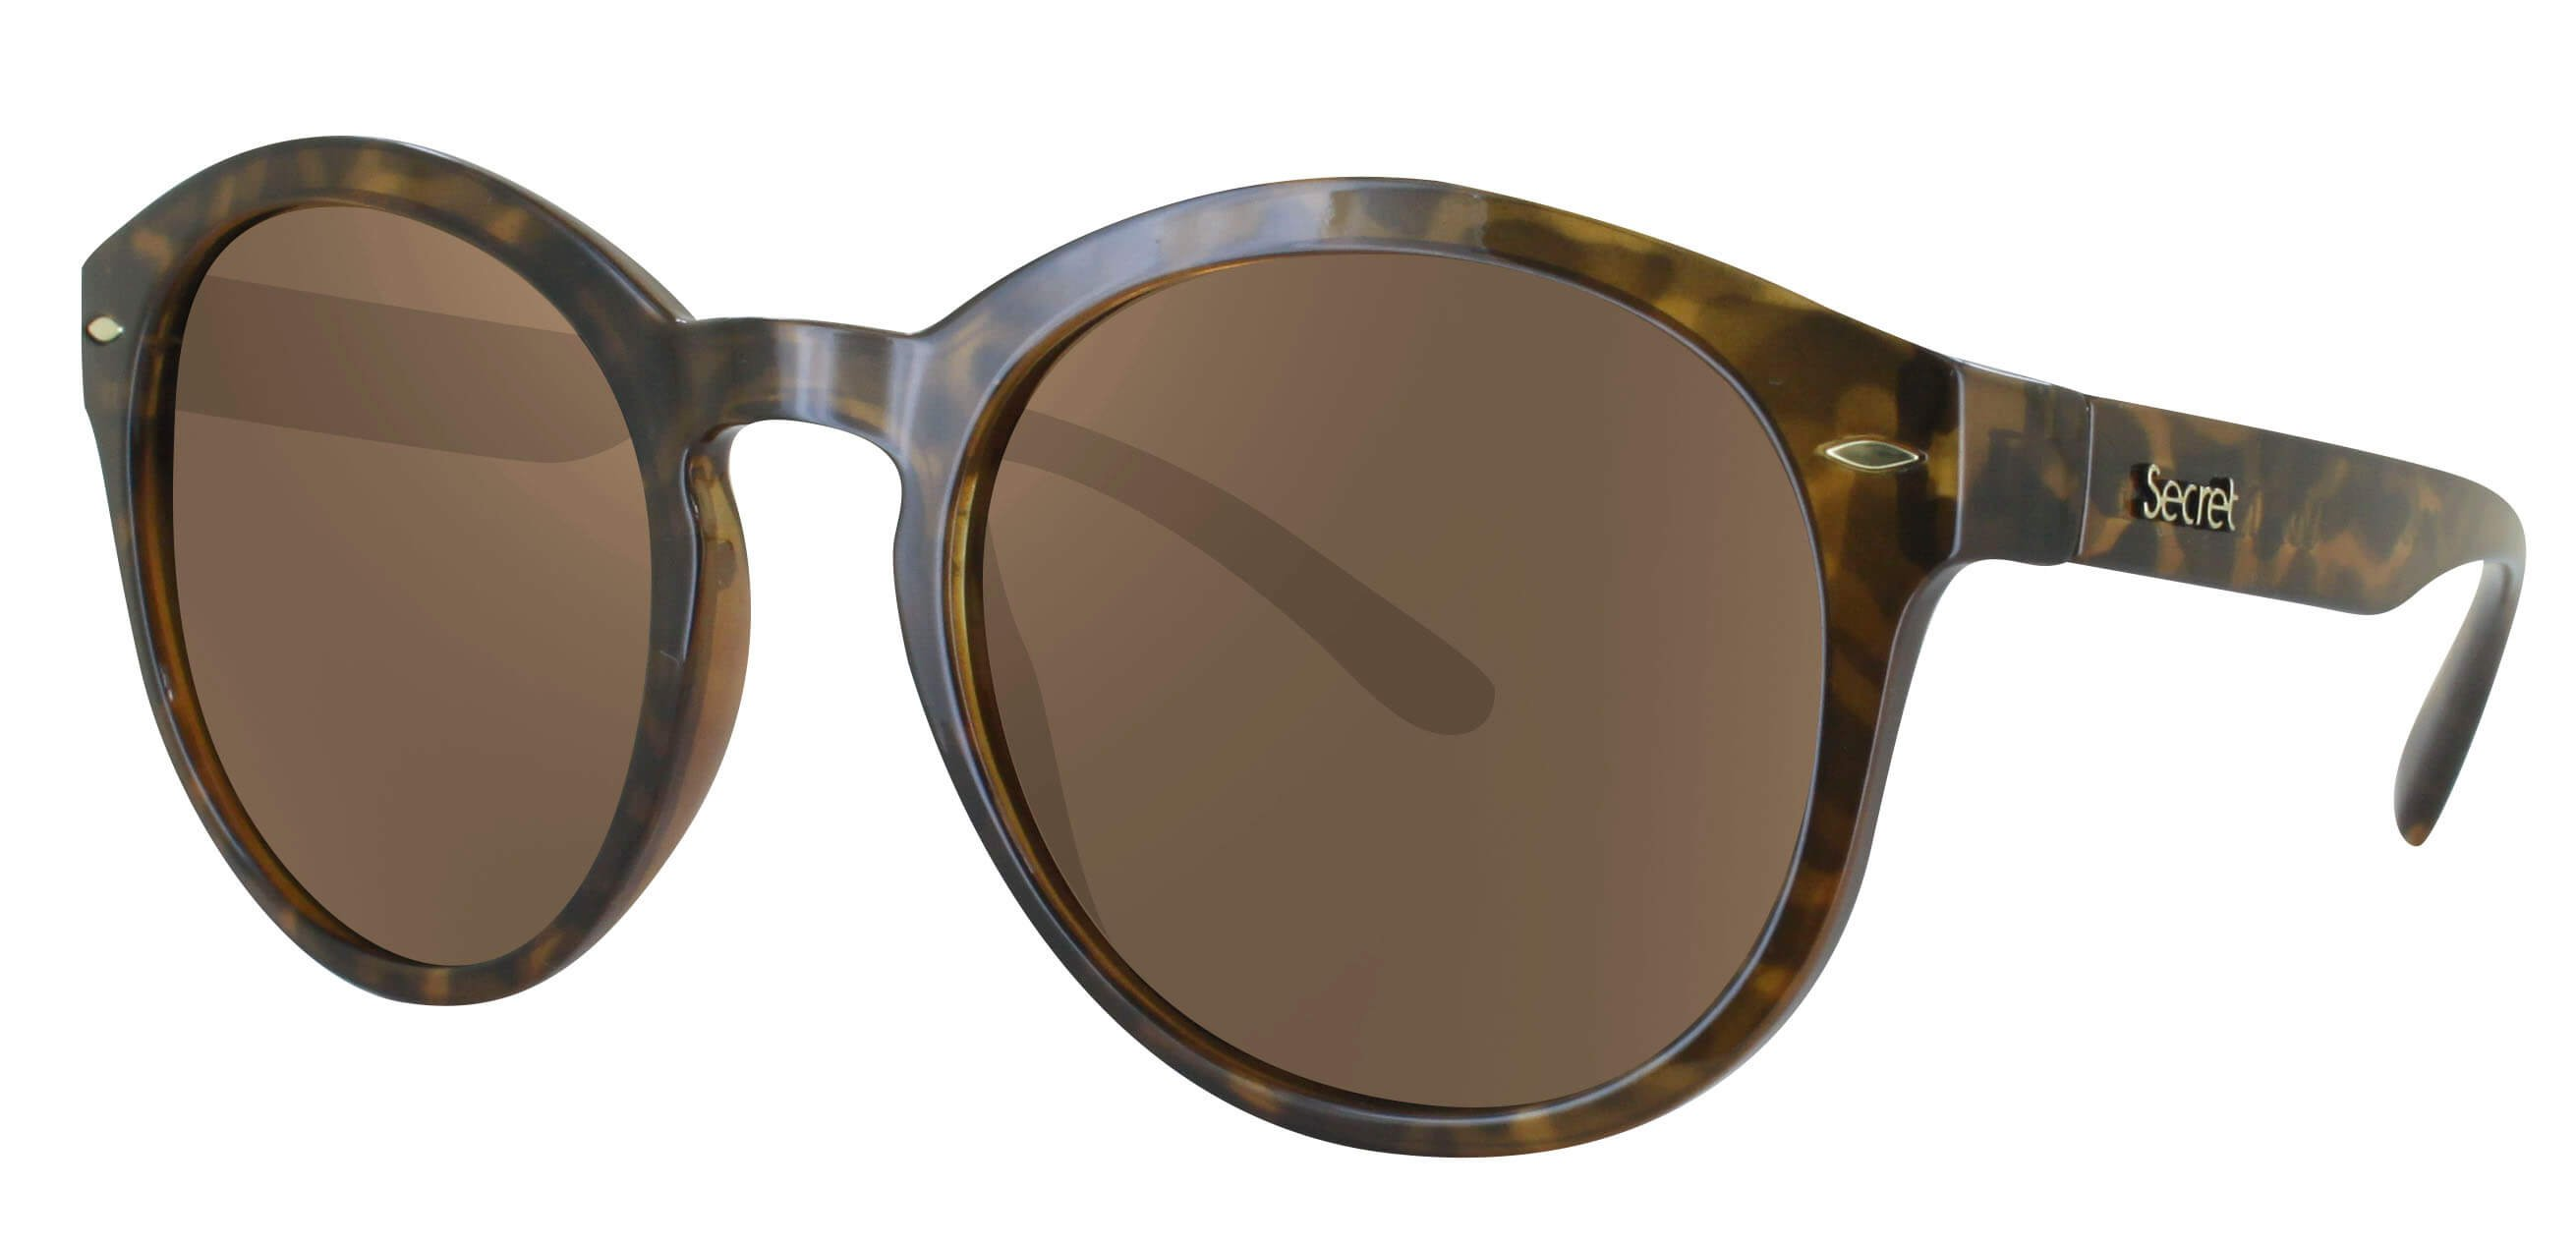 ÓC SECRET WANNABE HAVANA TURTLE / POLARIZED BROWN